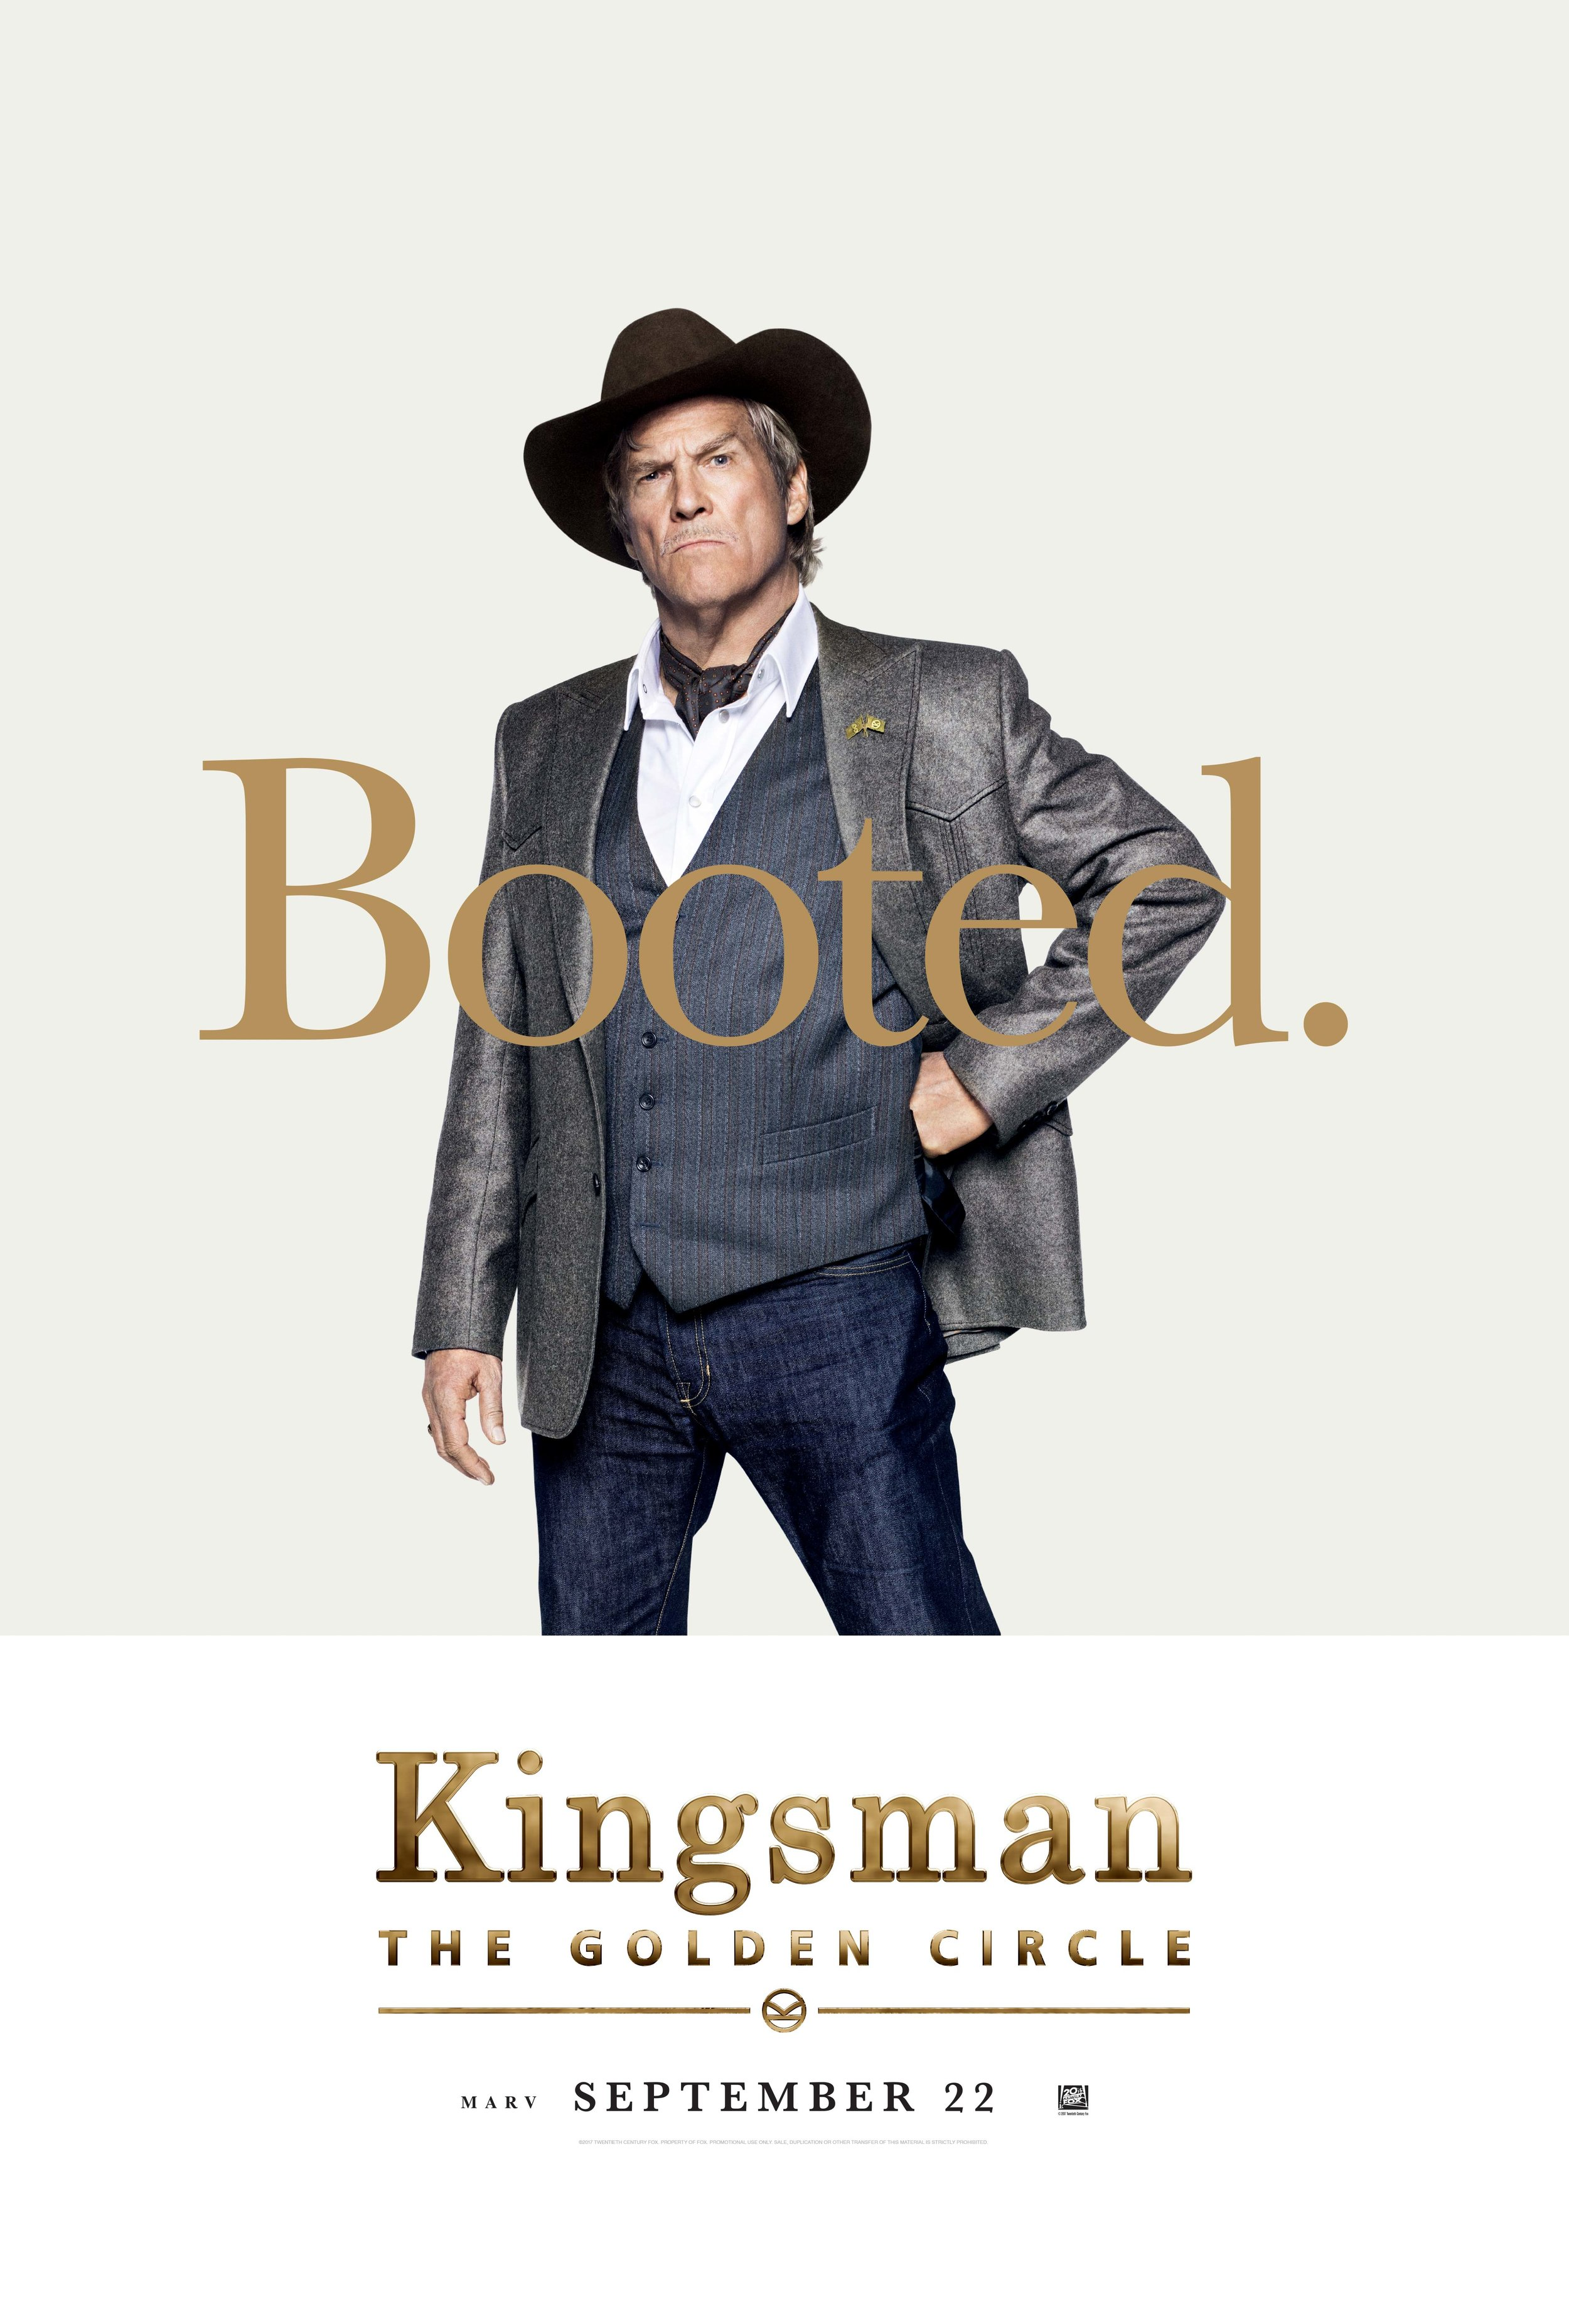 8-dapper-kingsman-the-golden-circle-character-posters-and-comic-con-panel-details33